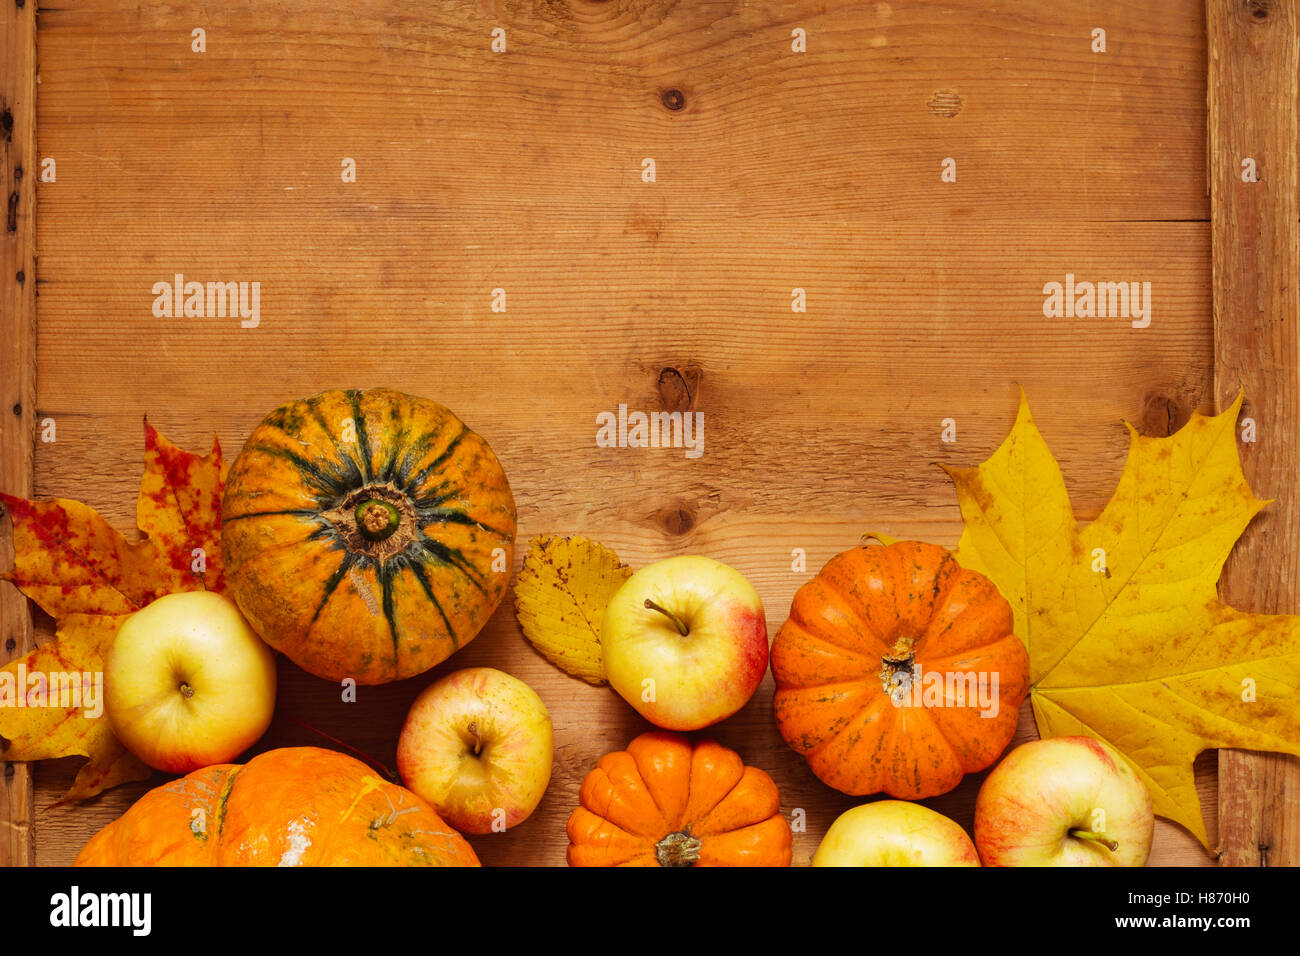 Thanksgiving background: variety of pumpkins, apples and fallen leaves on wooden table with copy space for text. - Stock Image